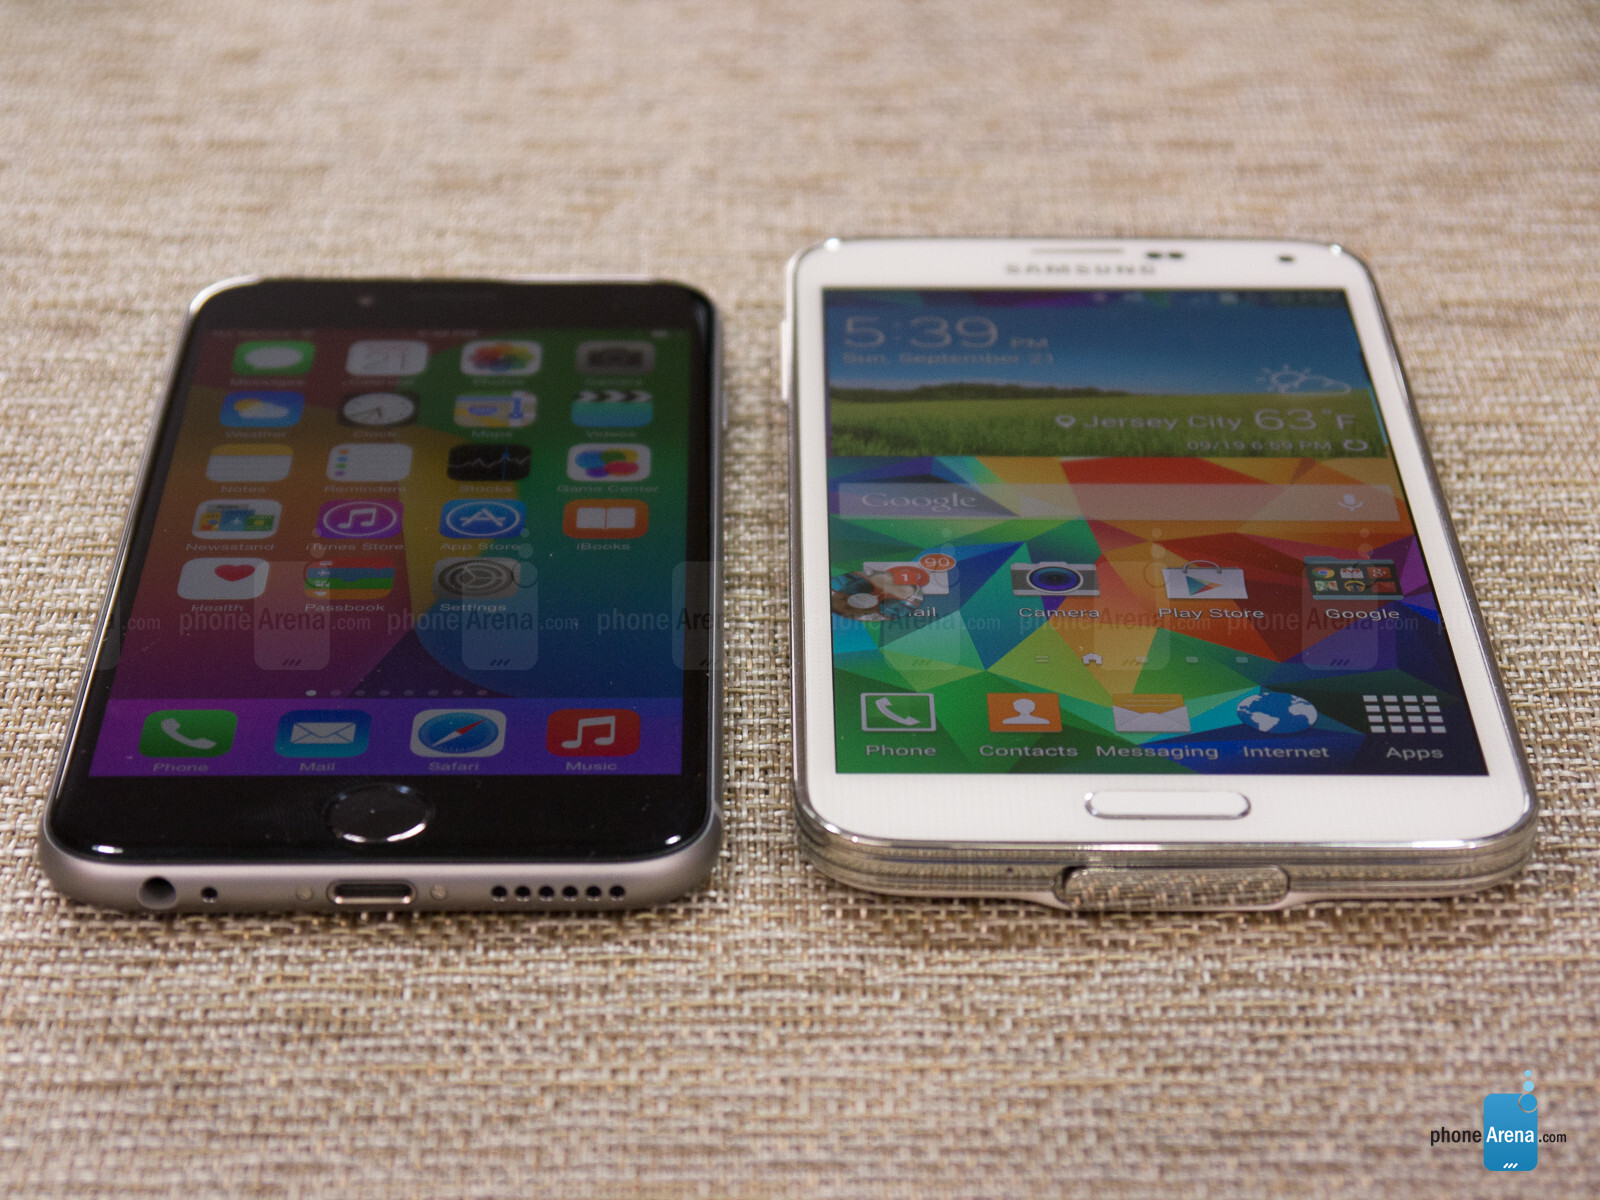 iphone 6 vs samsung galaxy s5 What is the difference between apple iphone 6 plus and samsung galaxy s5 - comparing the technical specifications and features of iphone 6 plus and galaxy s5.